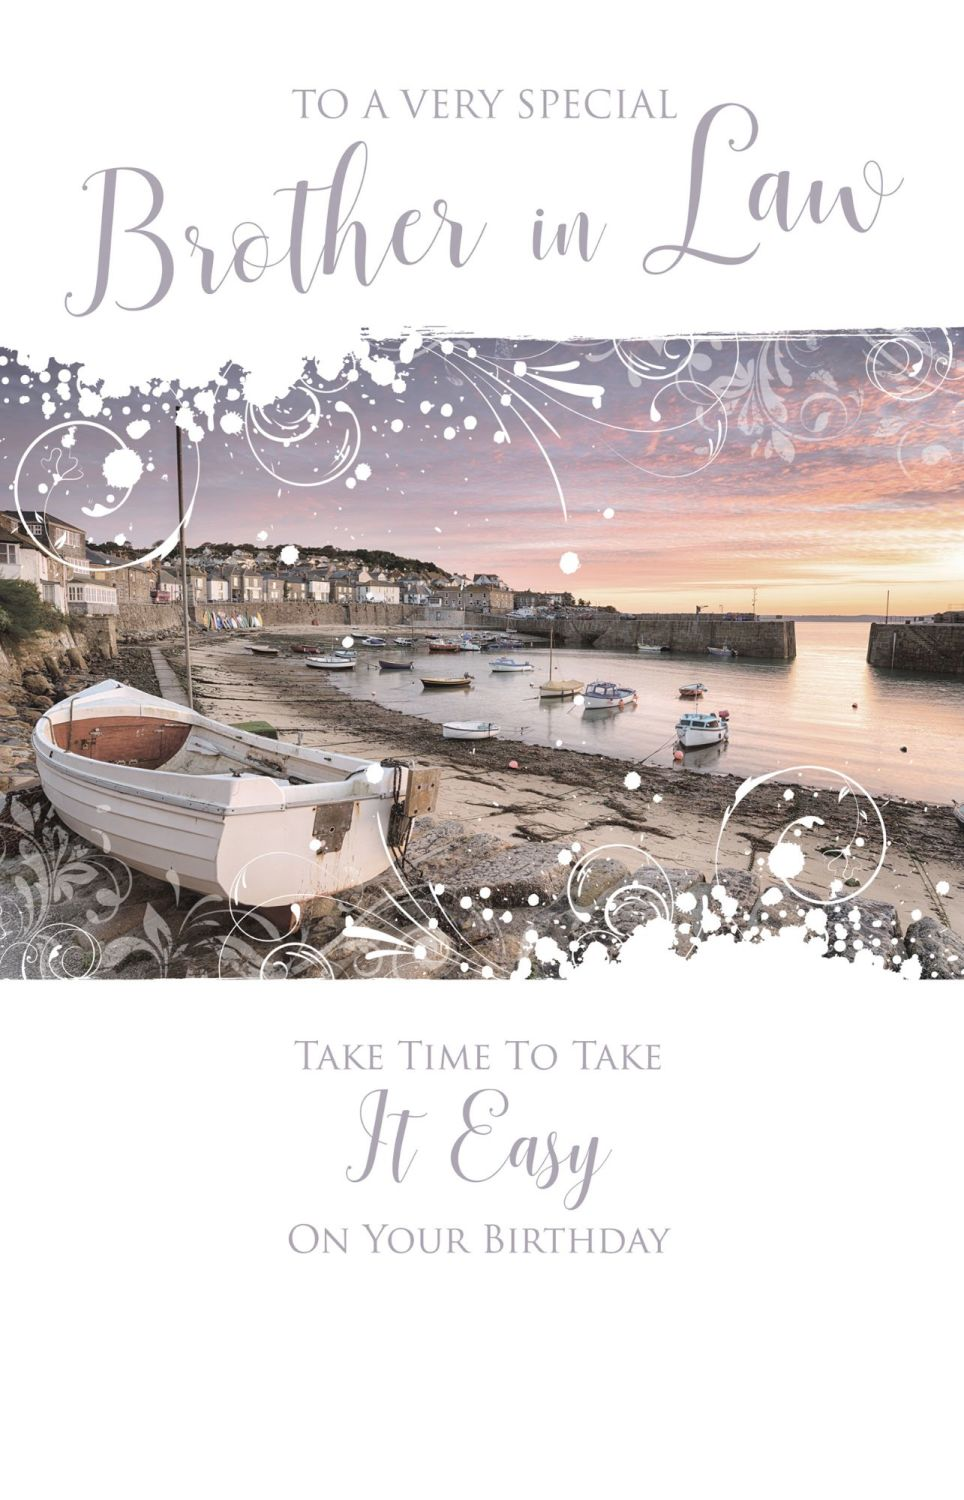 Special Brother In Law Birthday Cards - TAKE Time To TAKE It EASY - Birthda